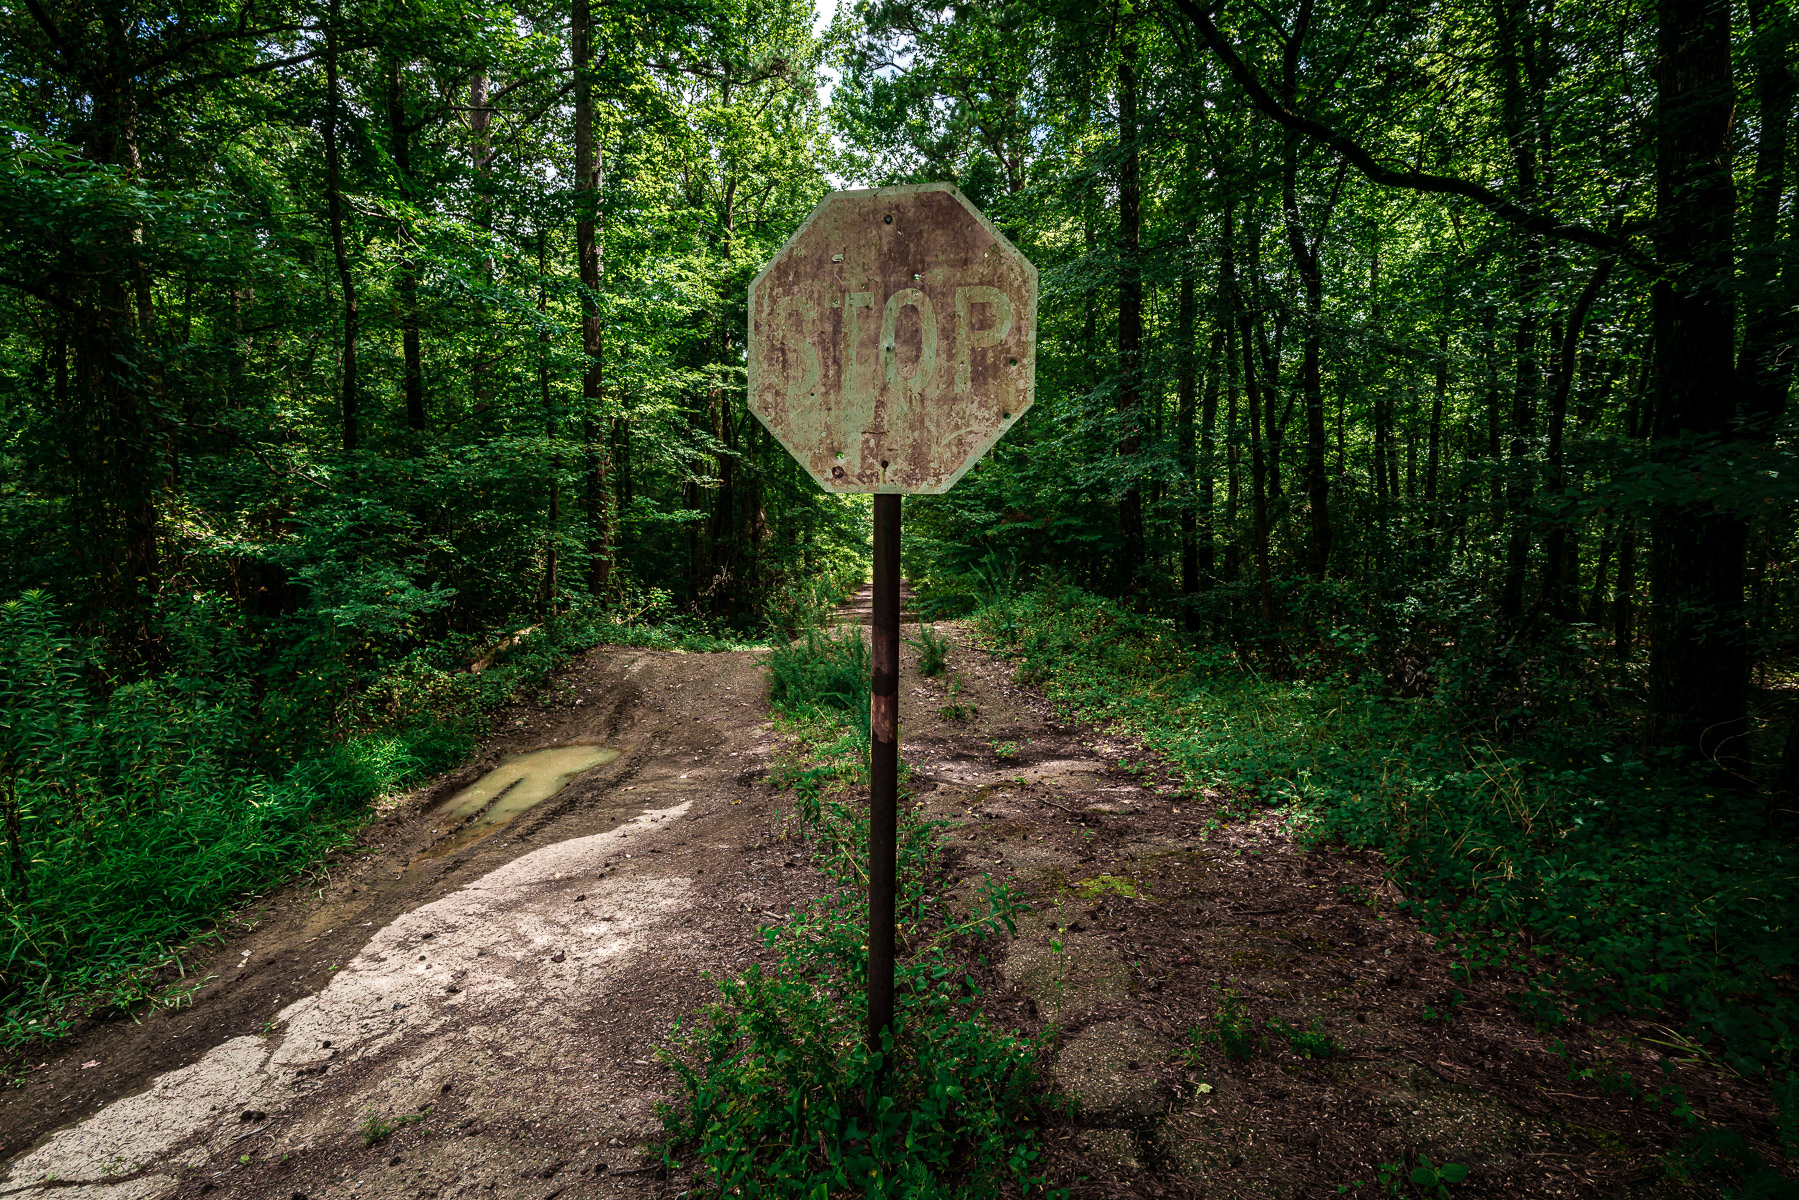 A forgotten stop sign in the forest at Arkansas' Star of the West Public Use Area along the shore of Lake Greeson.